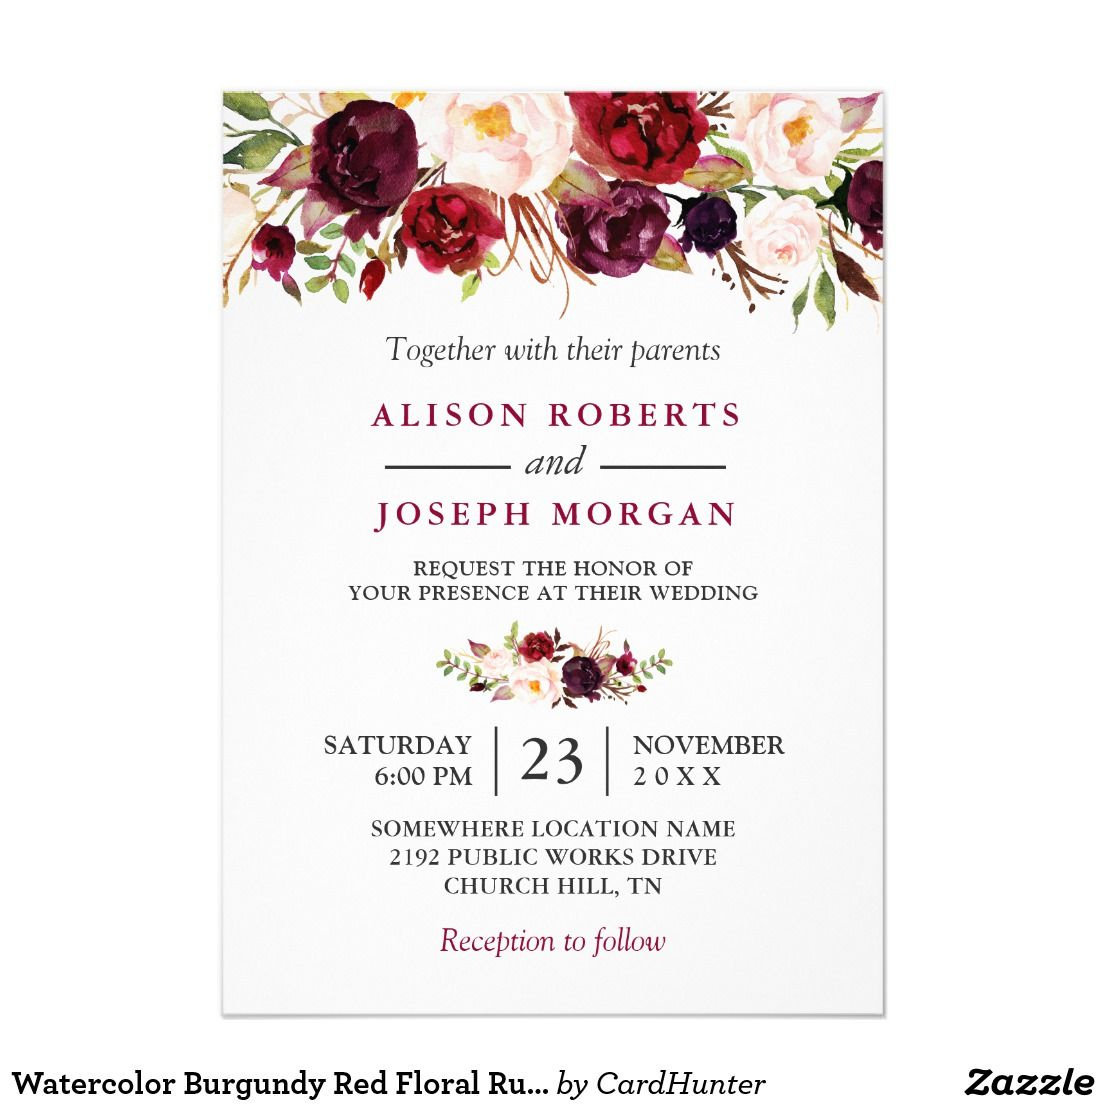 Watercolor Burgundy Red Floral Rustic Boho Wedding Custom Diy